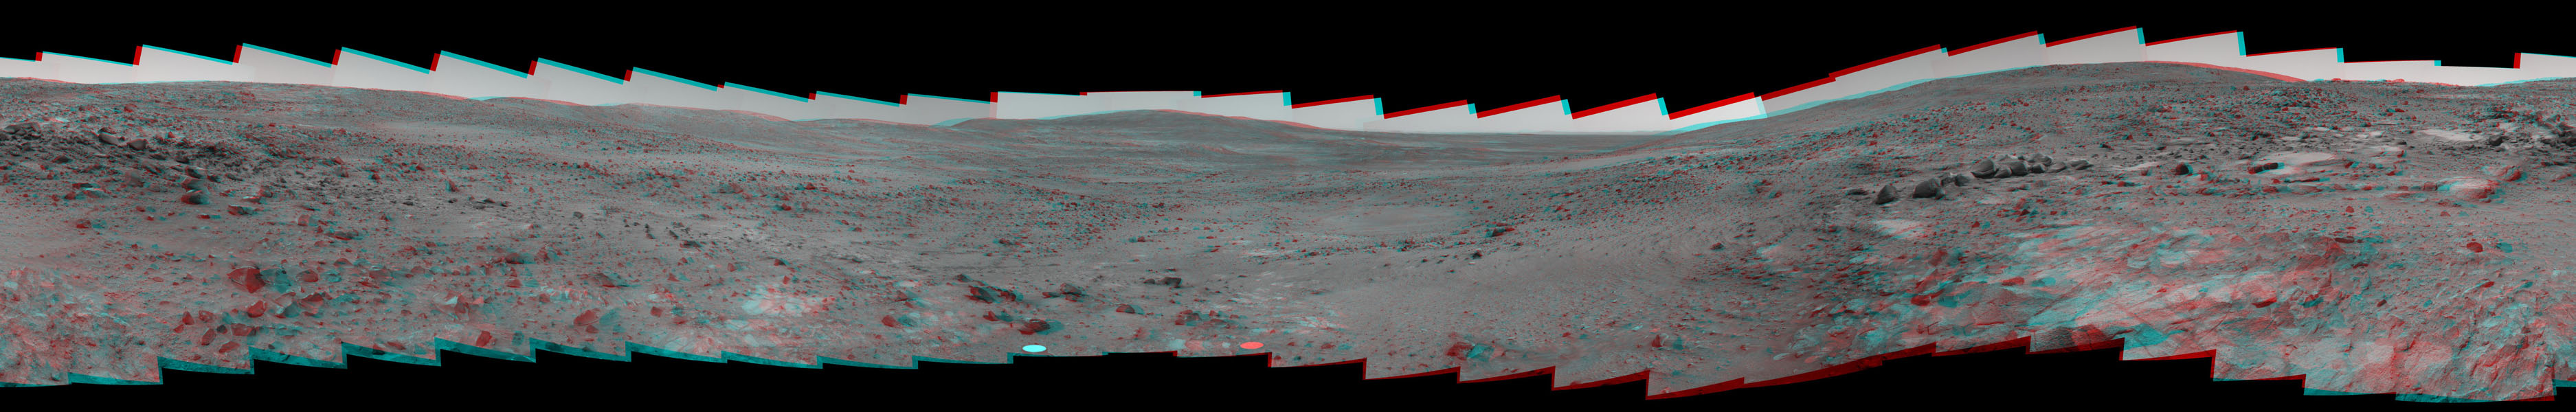 NASA's Mars Exploration Rover Spirit recorded this 360-degree vista, dubbed the 'Seminole' panorama, from partway down the south side of 'Husband Hill' in November 2005. 3D glasses are necessary to view this image.